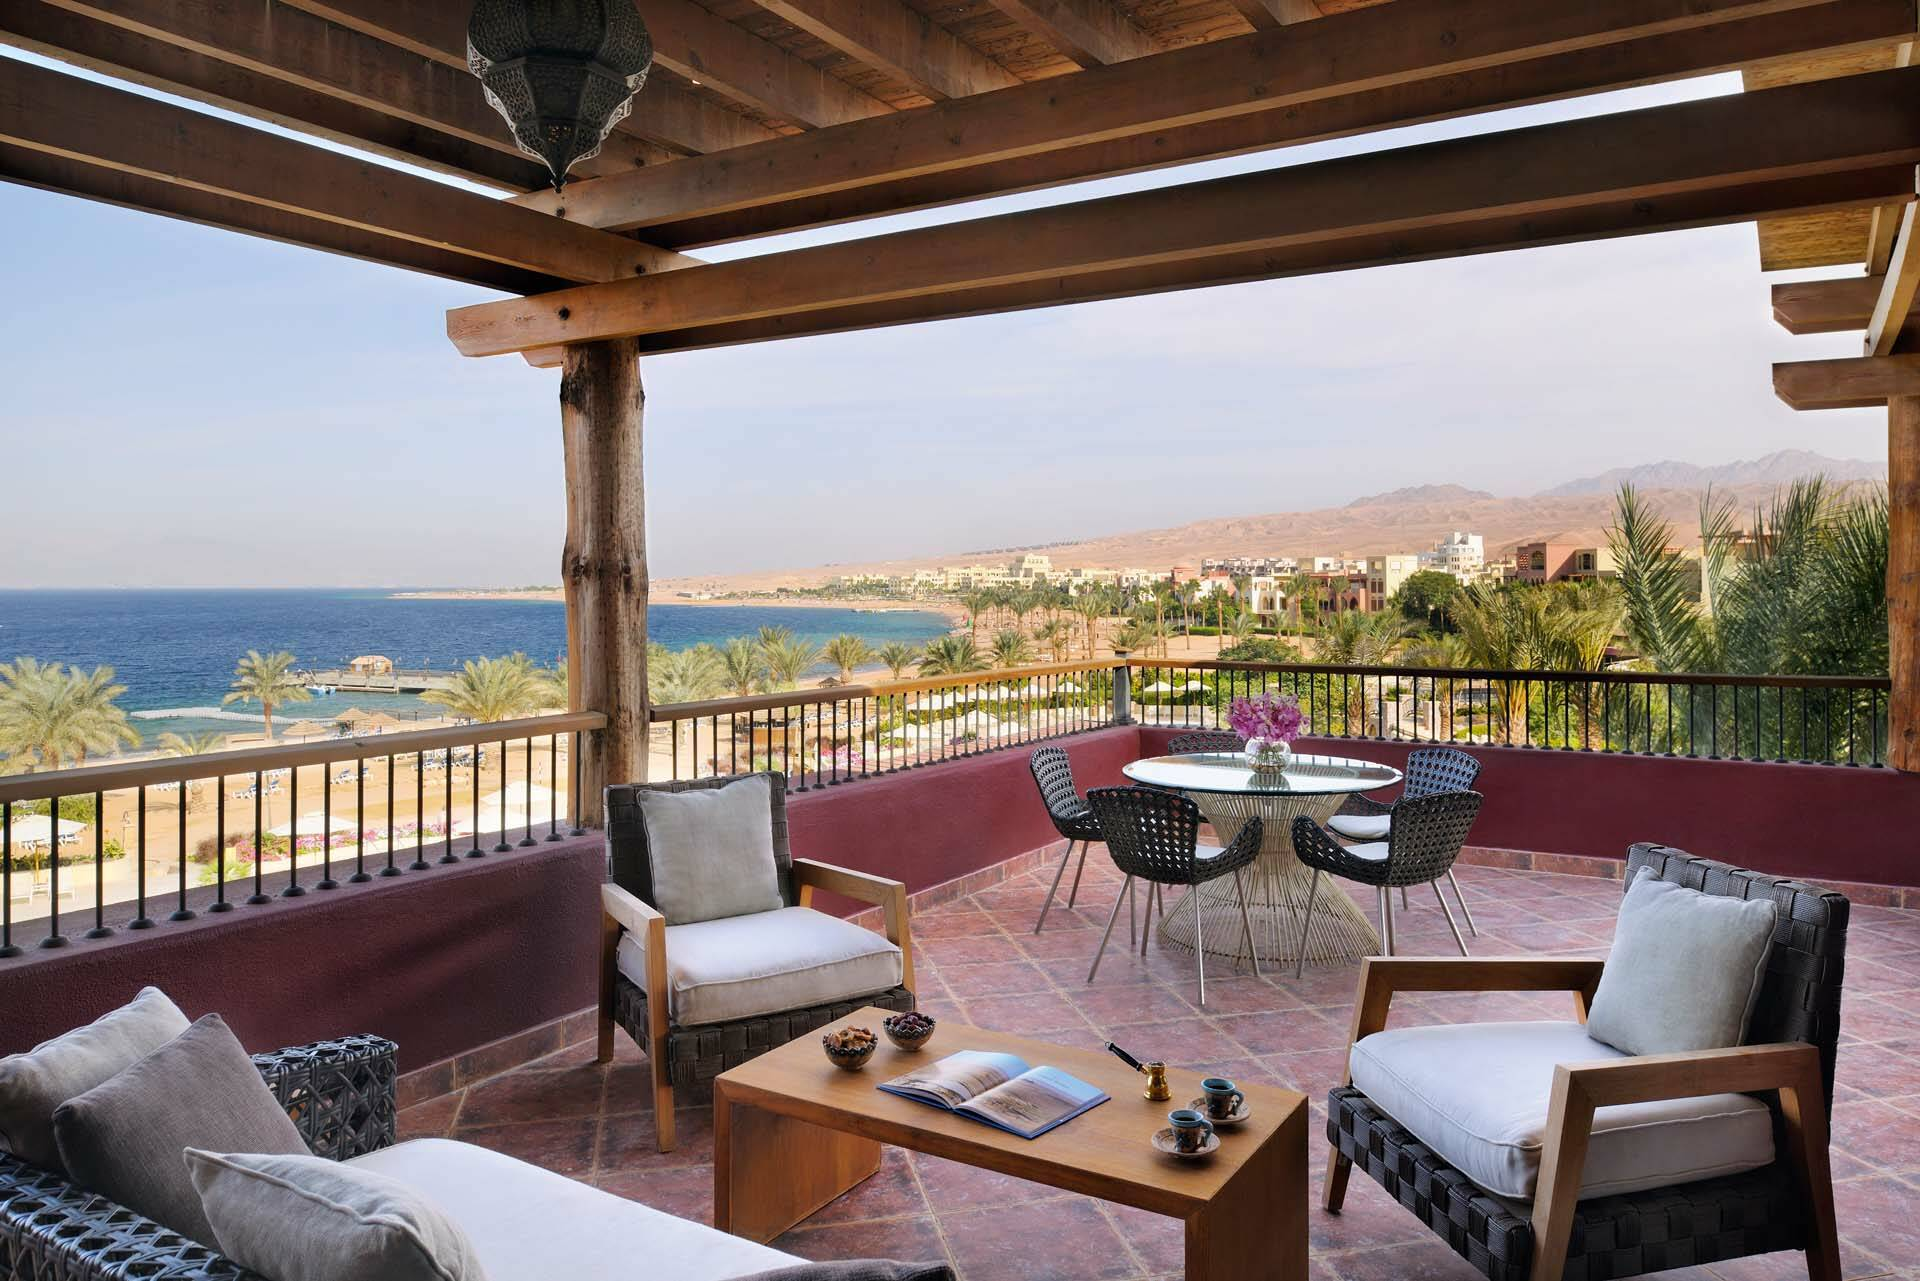 HILTON DEAD SEA RESORT & SPA sur les bords de la mer morte